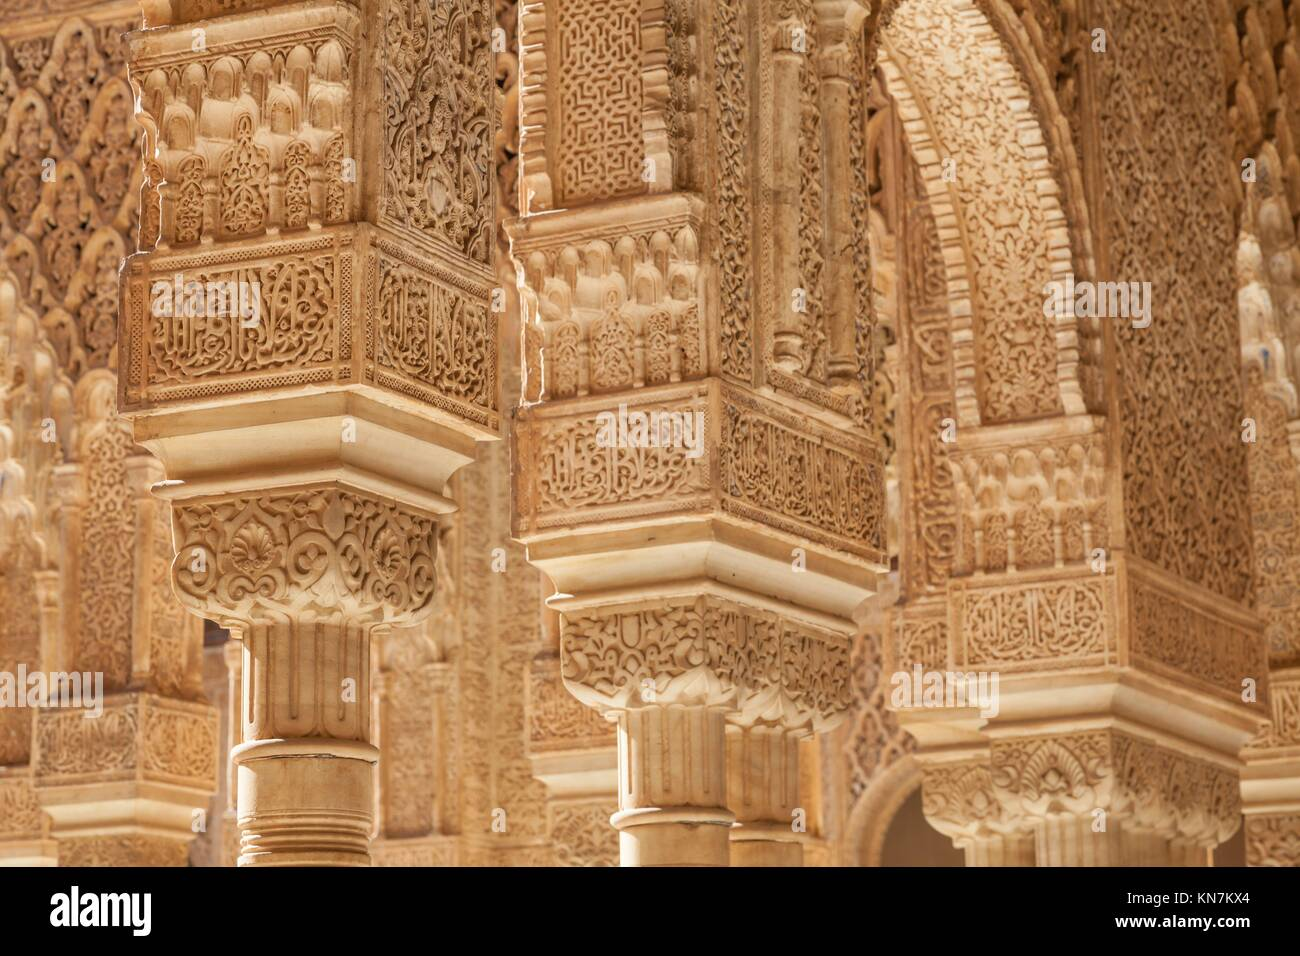 Moresque ornaments from Alhambra Islamic Royal Palace, Granada, Spain. 16th century. - Stock Image